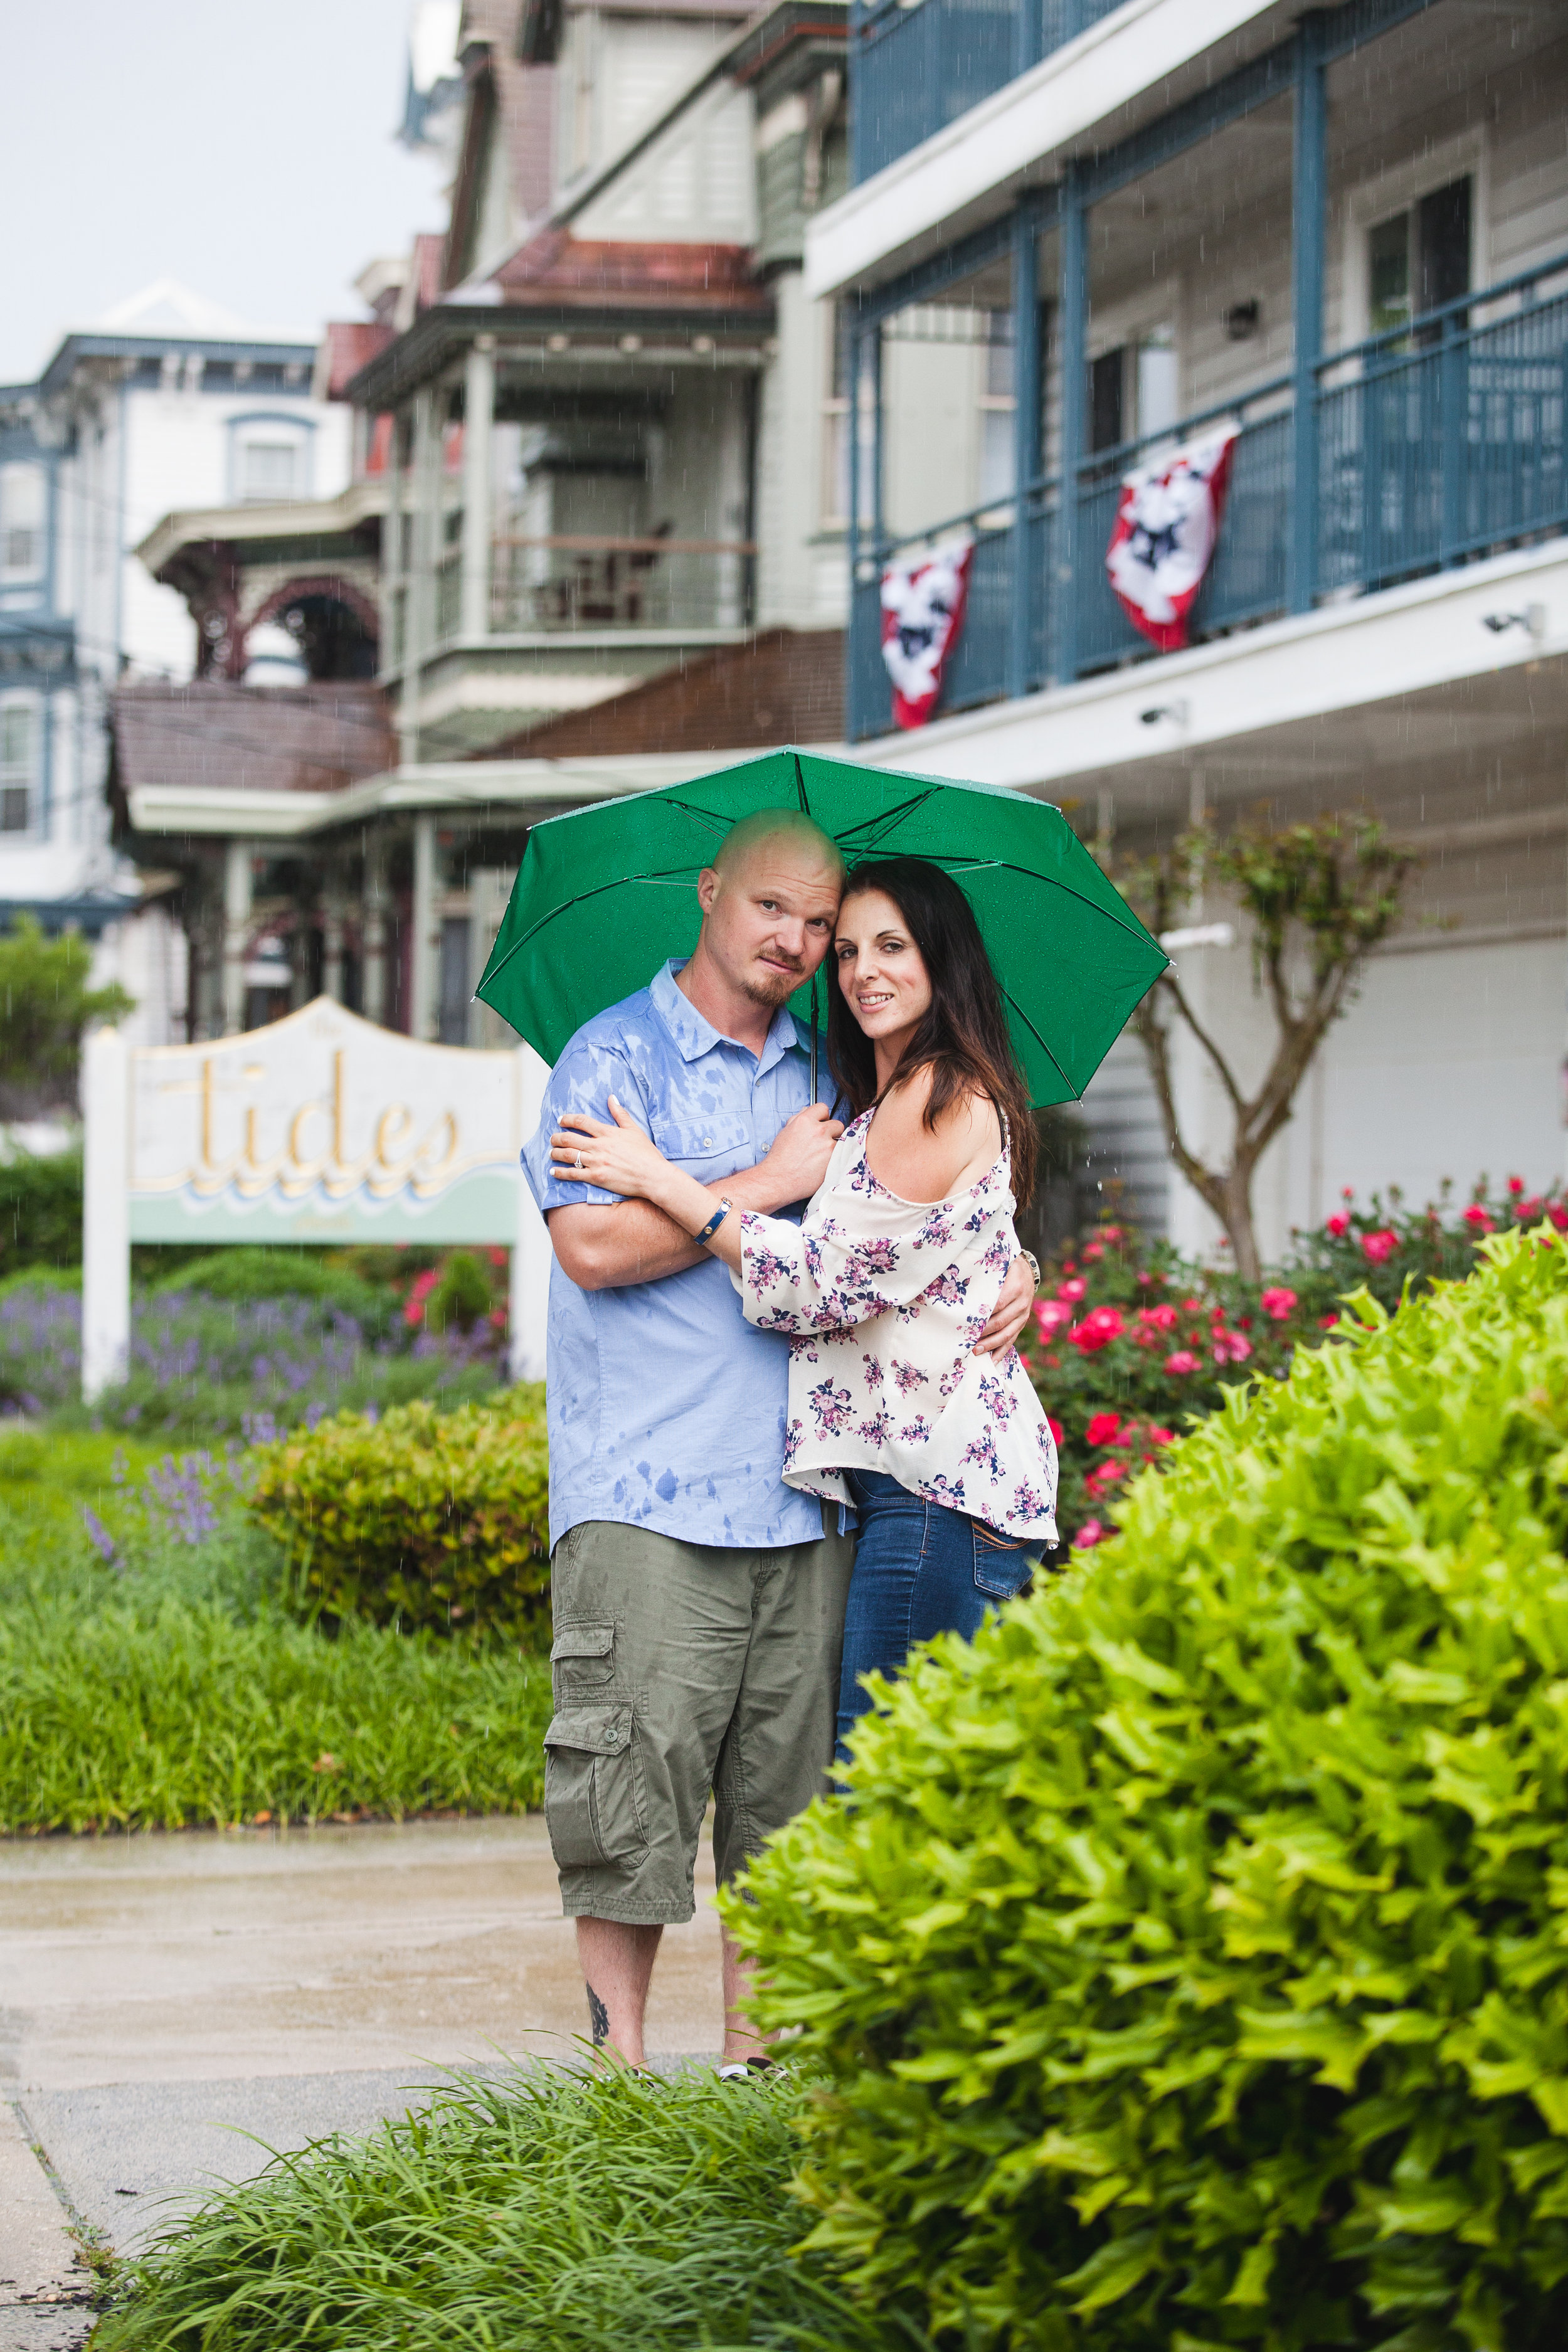 StaceyandJohnEngagementPrints-69.jpg